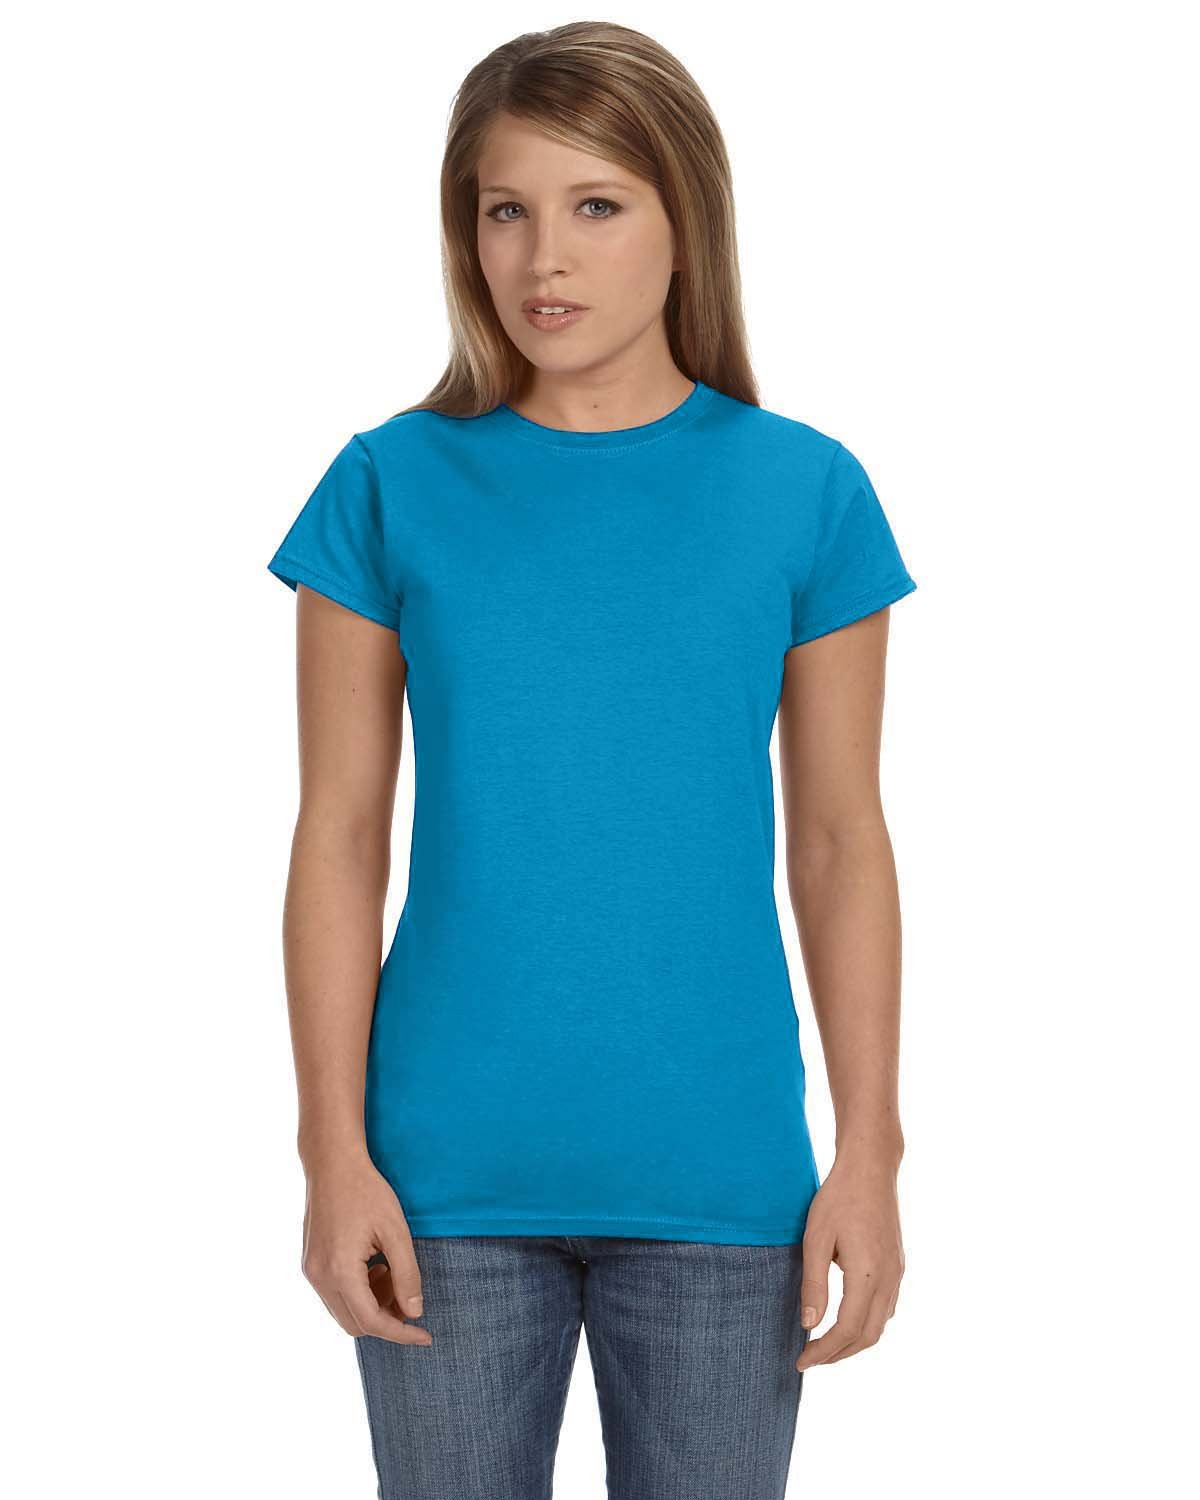 Gildan Ladies' Softstyle® 4.5 oz Fitted T-Shirt SAPPHIRE